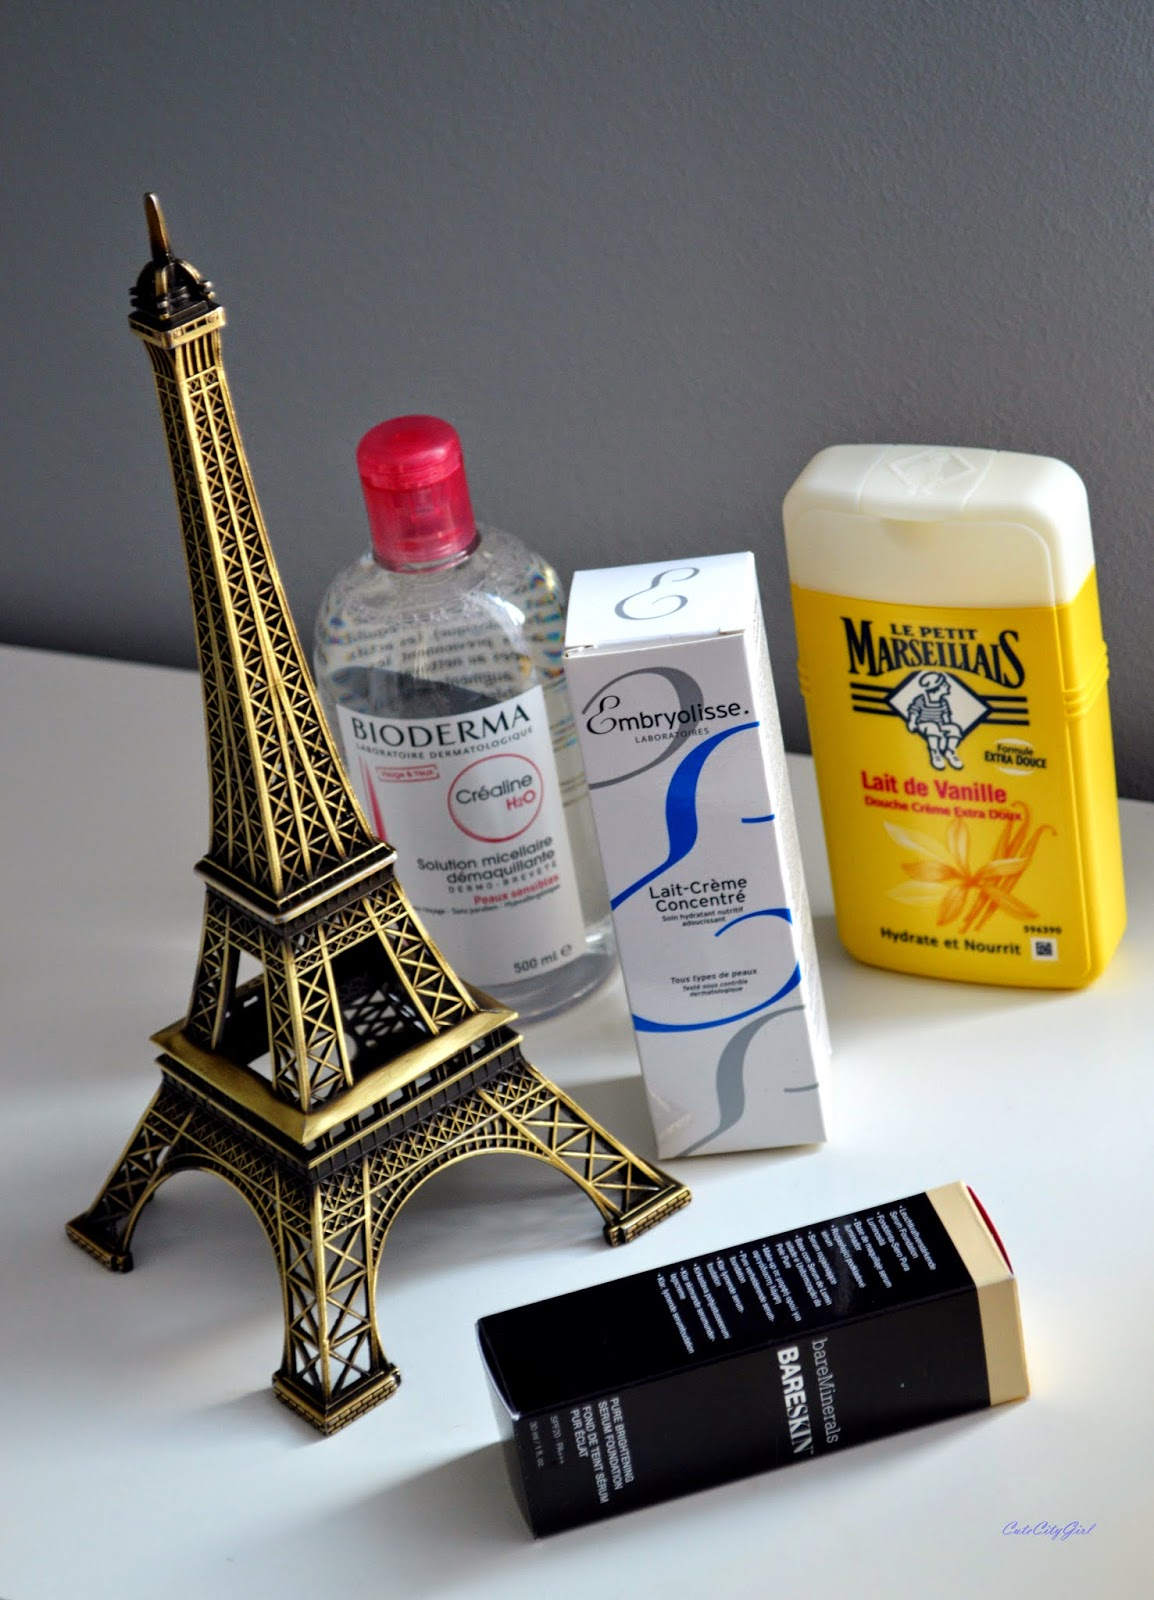 http://cutecitygirl.blogspot.co.at/2015/01/beauty-shopping-in-paris.html